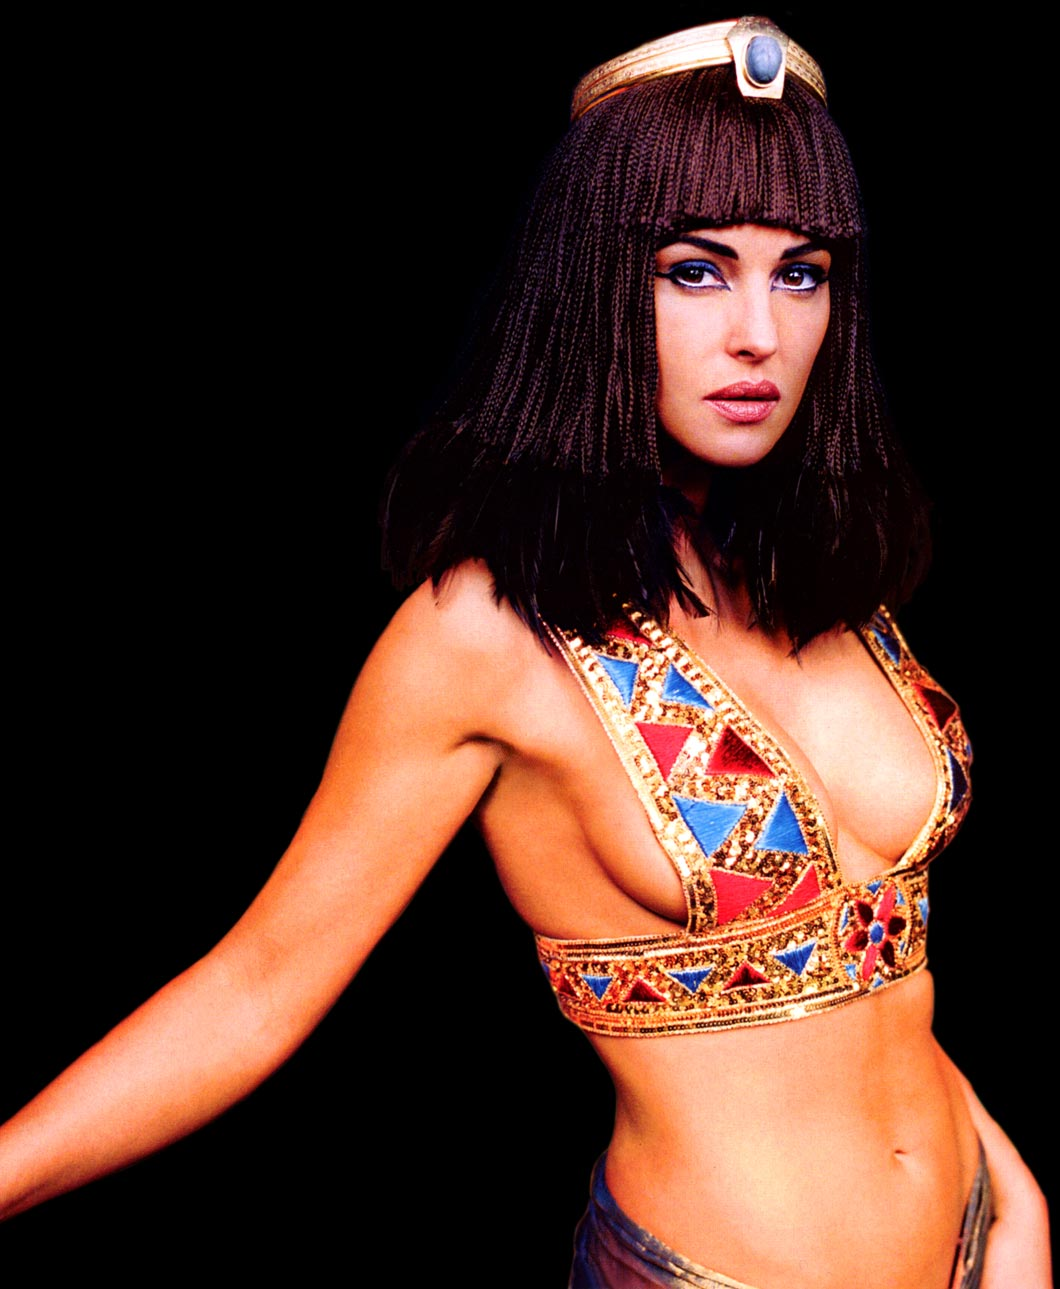 Celebrities, Movies and Games: Monica Bellucci as